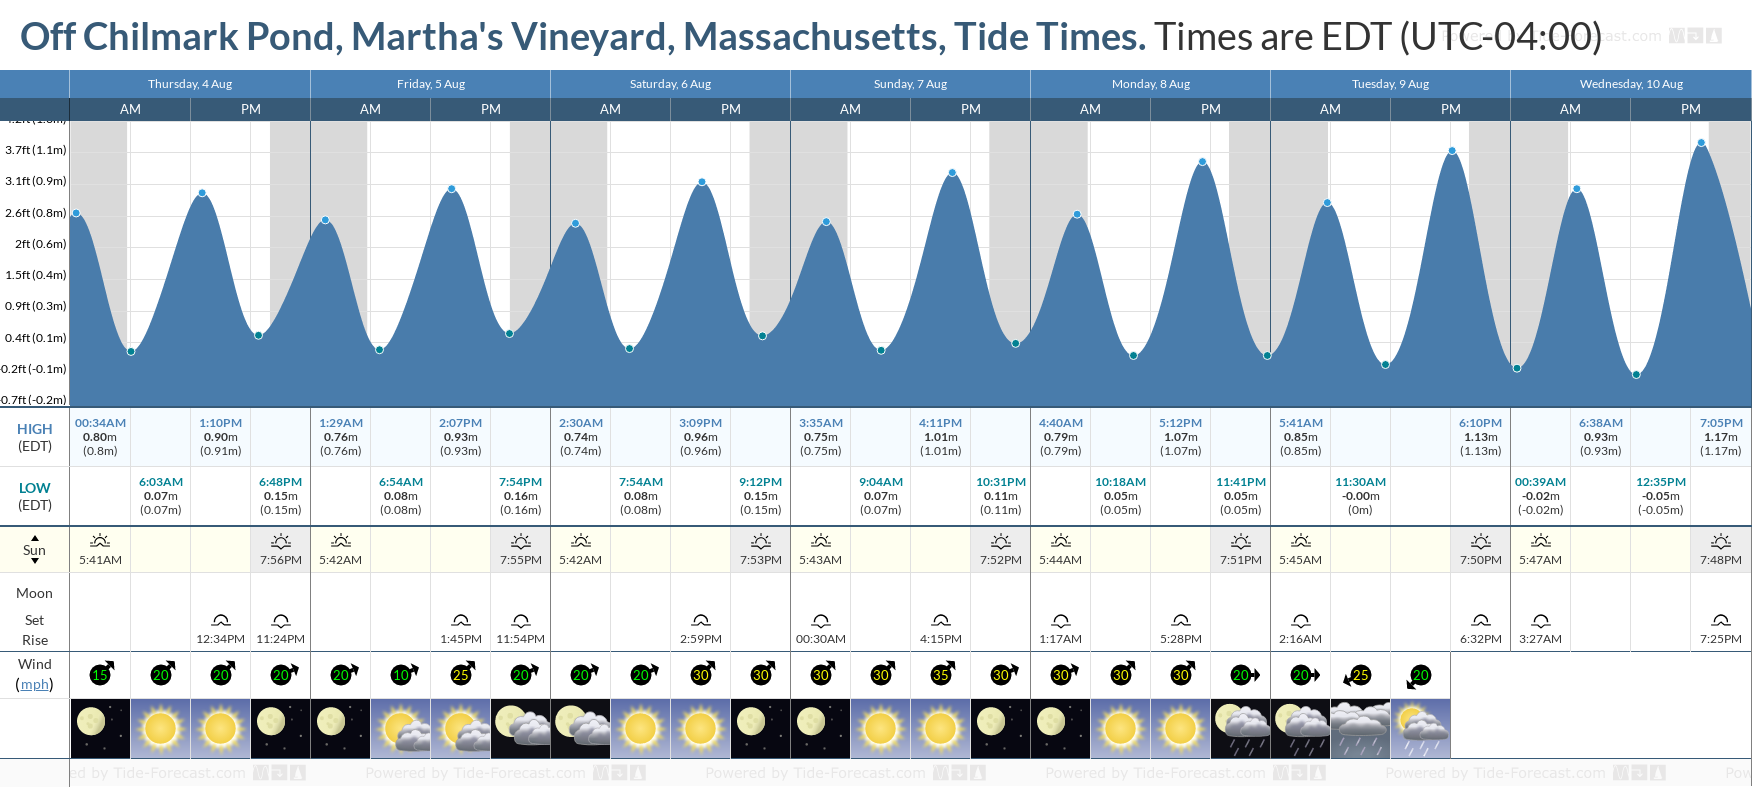 Off Chilmark Pond, Martha's Vineyard, Massachusetts Tide Chart including high and low tide tide times for the next 7 days